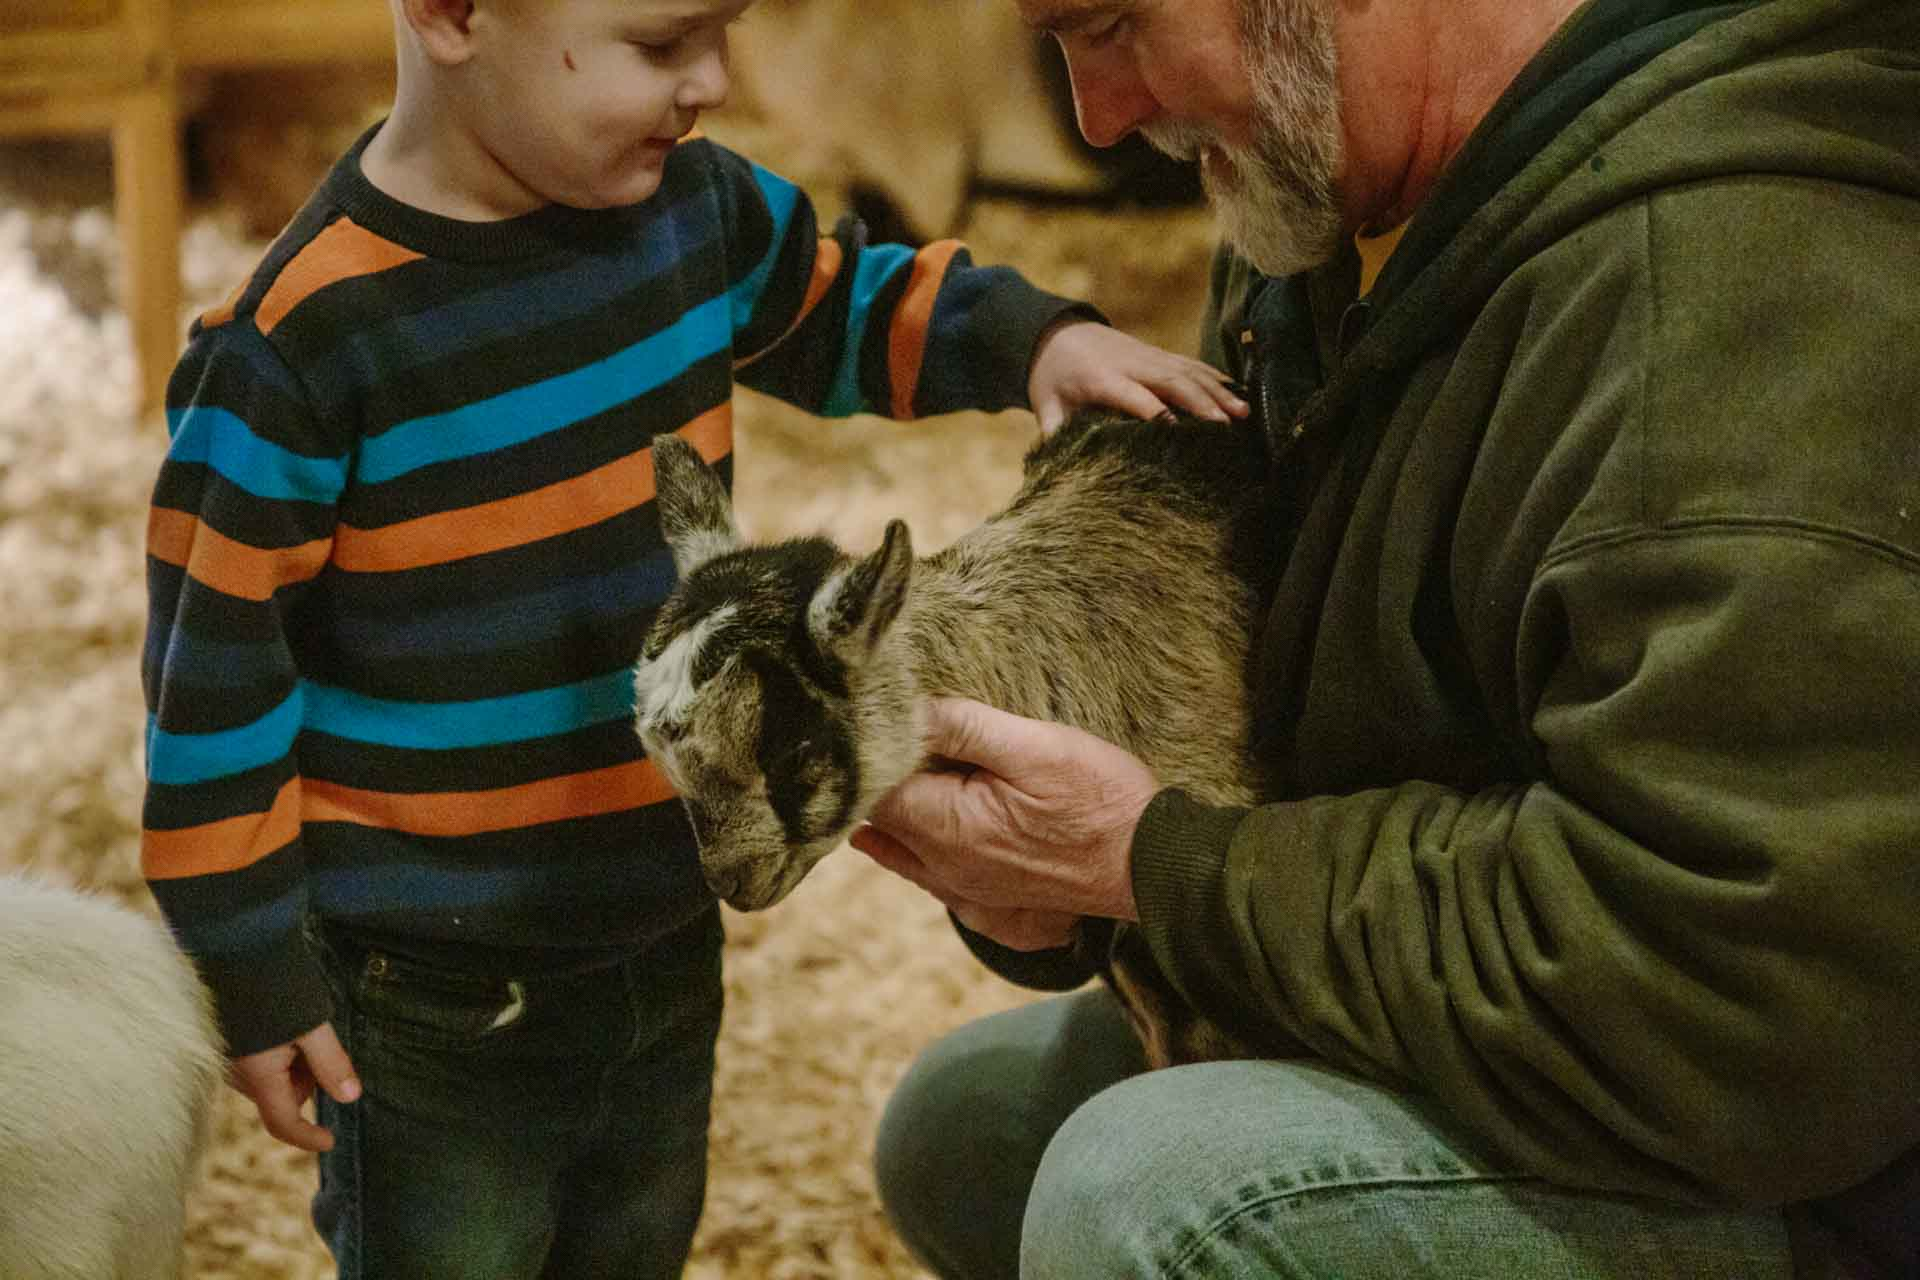 Petting Zoo - Pygmy Goat at Country Roads in Missouri